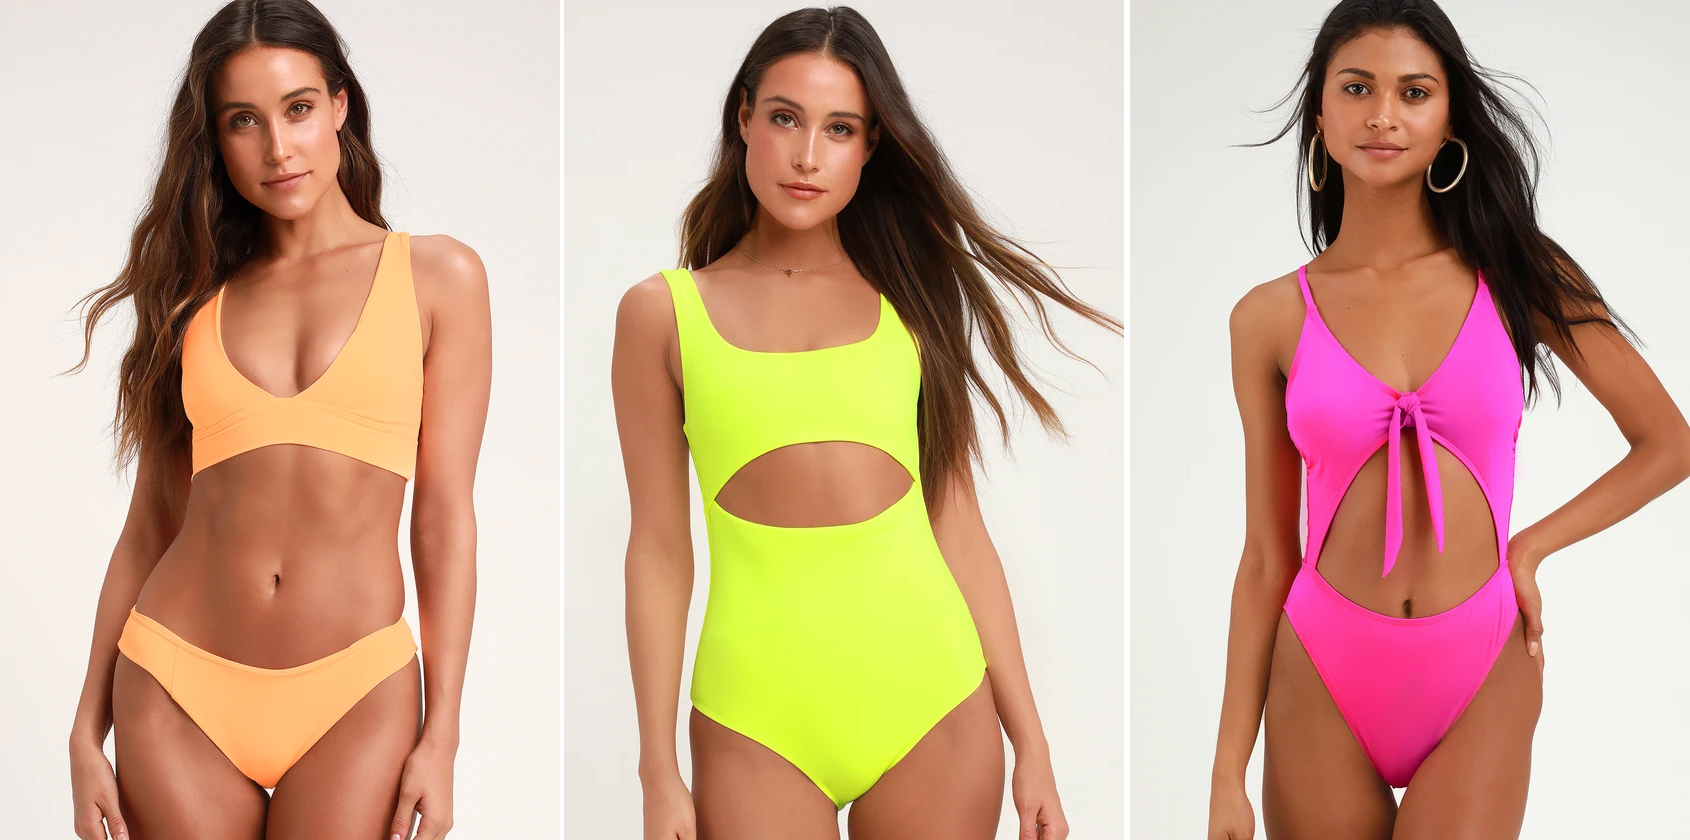 f6a9df8db1c7 neon bathing suits - neon swimsuits- spring summer 2018 swimwear trends  swimwear trends 2019 swimwear